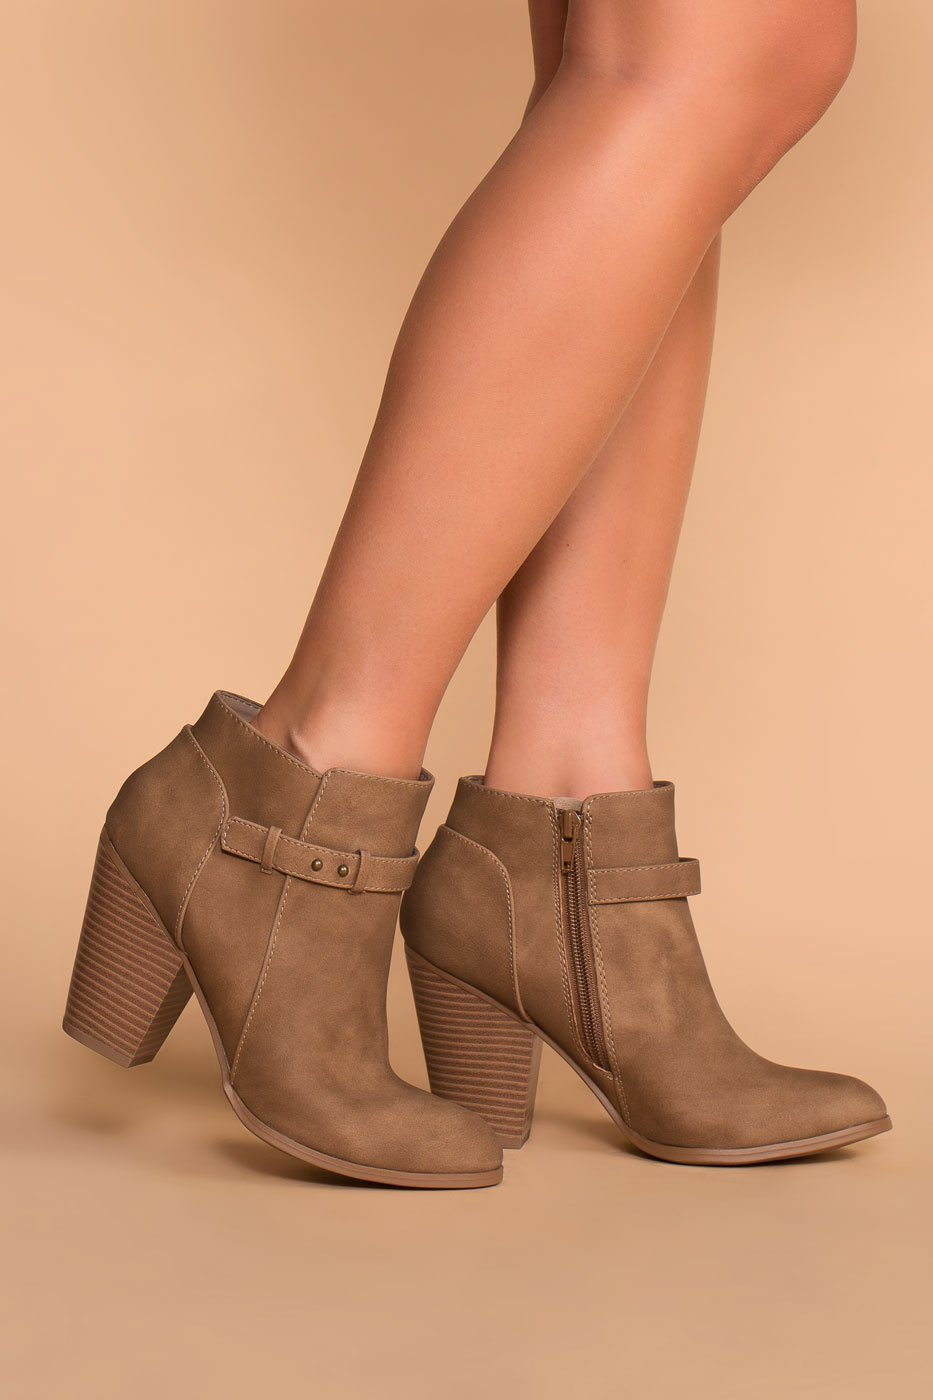 Taupe | Buckle Booties | Vegan | Leather | Heels | Priceless